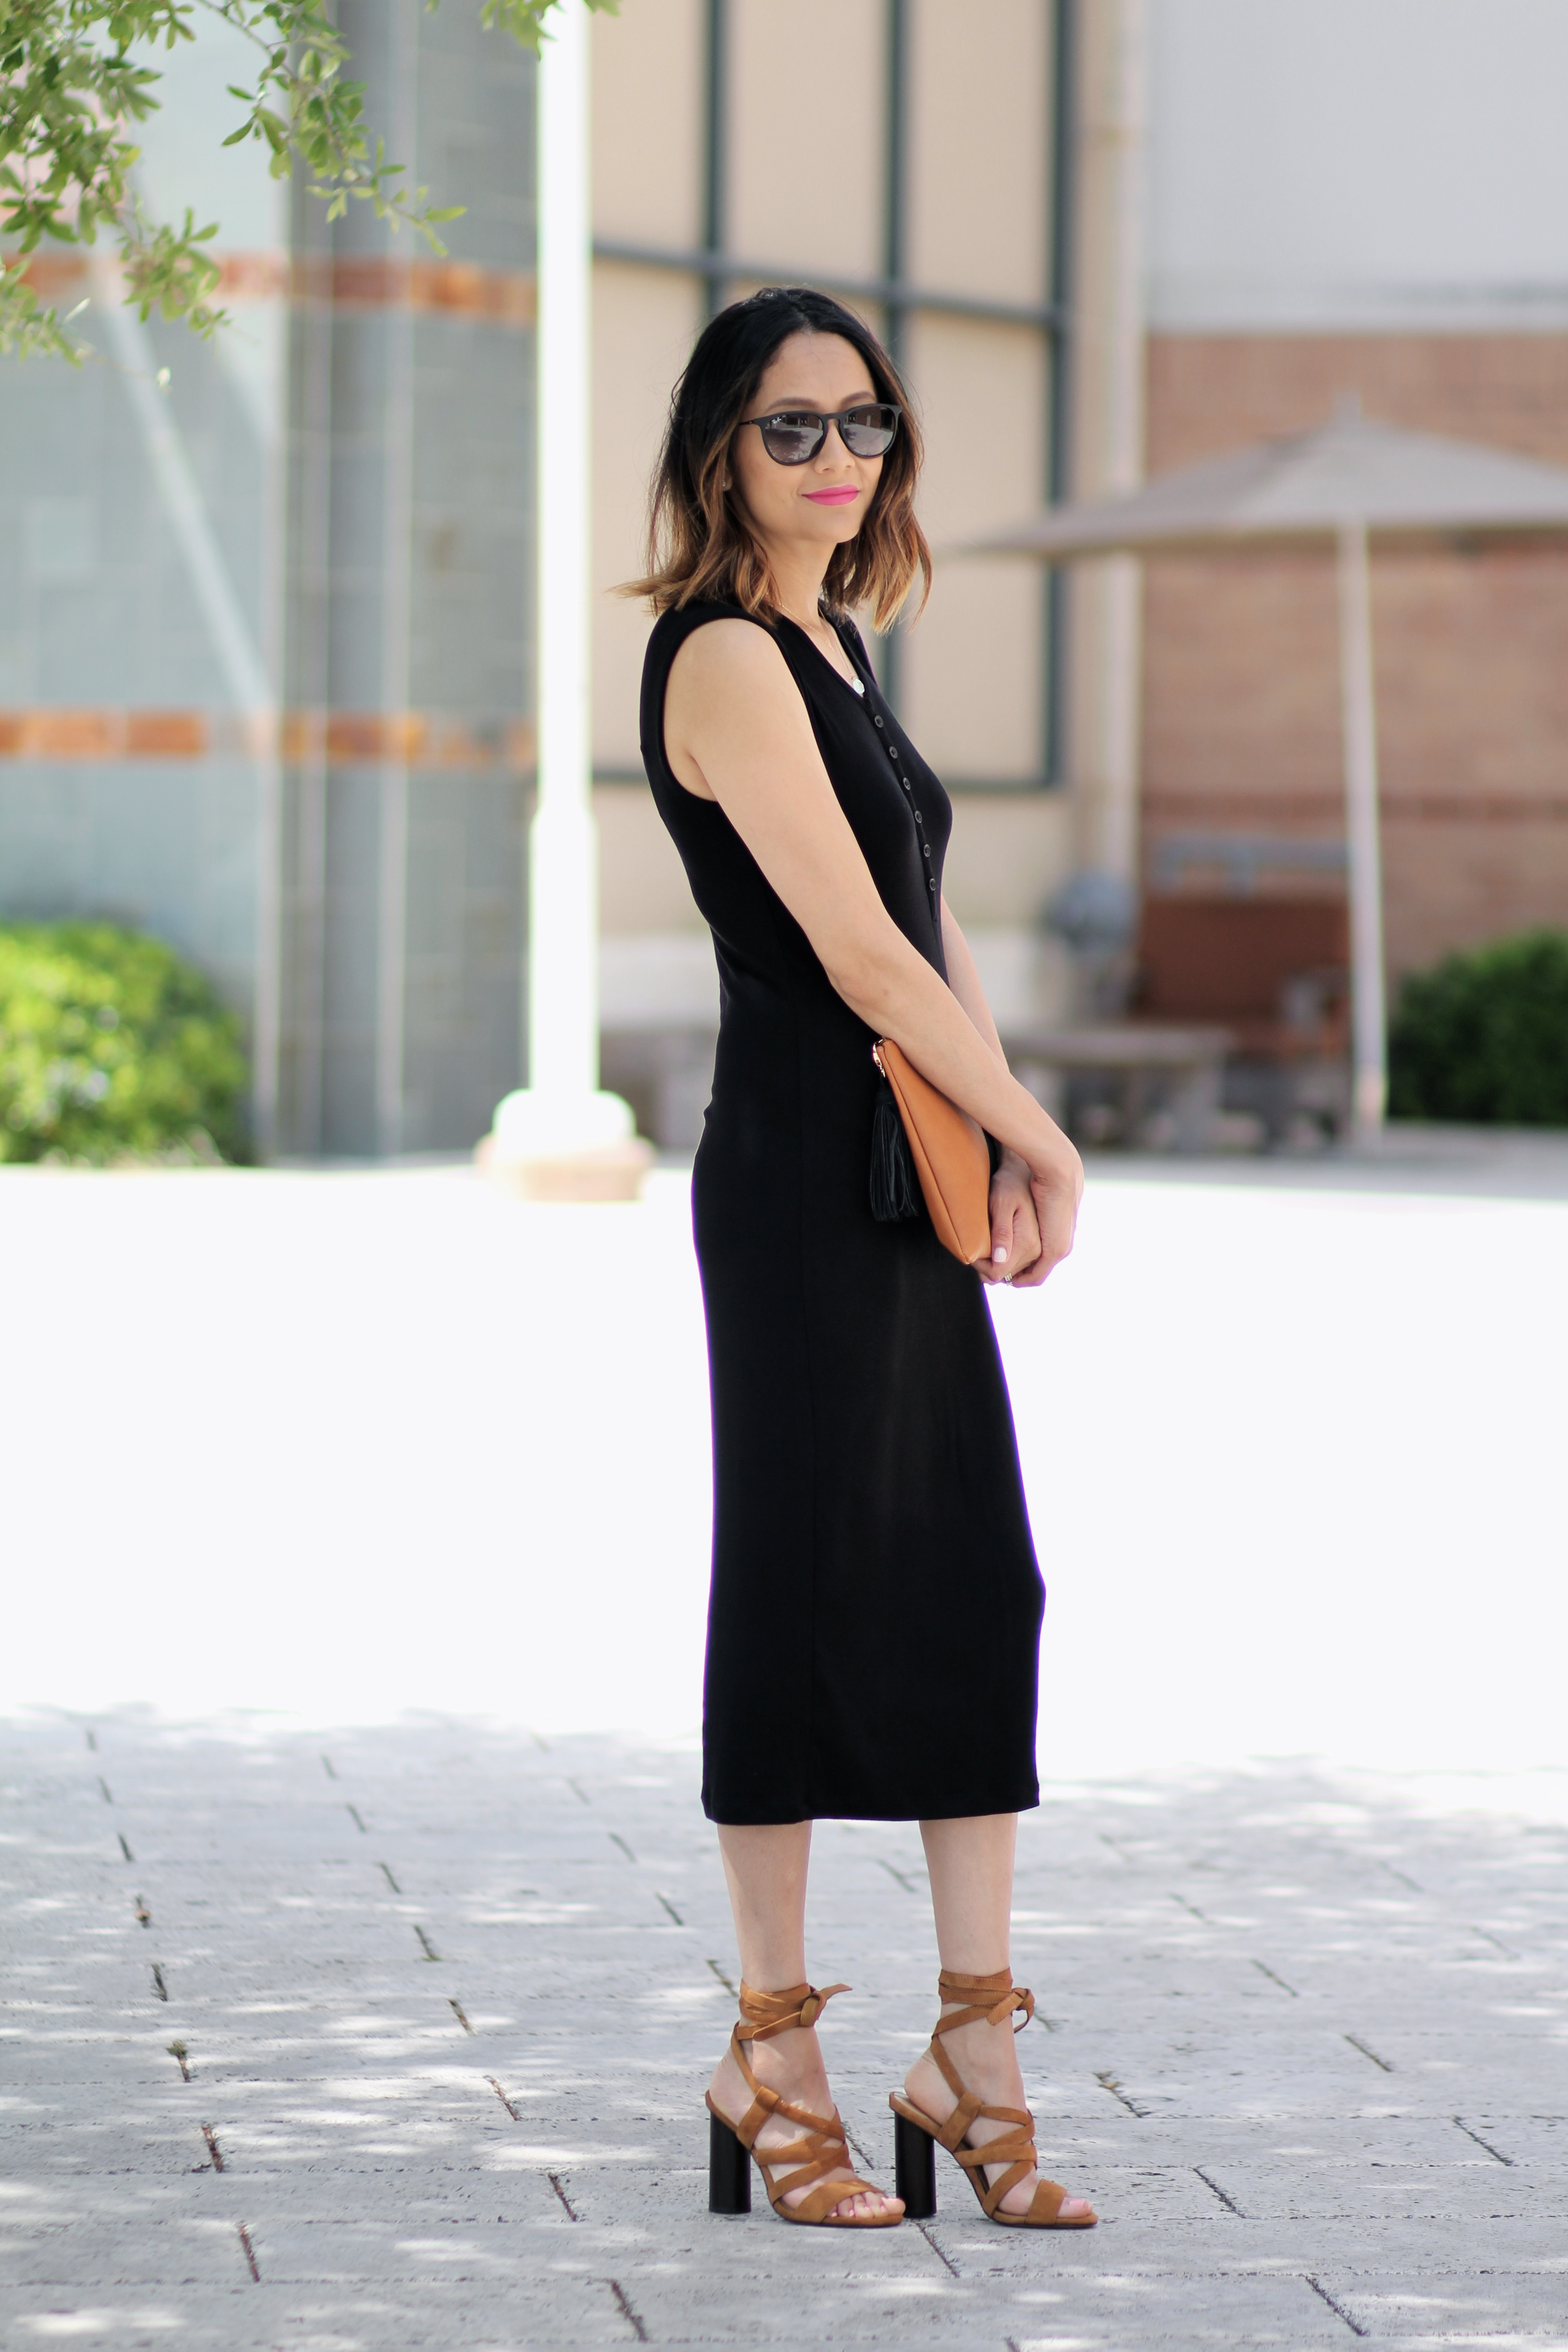 Black henley midi dress | Lace up sandals | Rayban Sunglasses | ombre hair